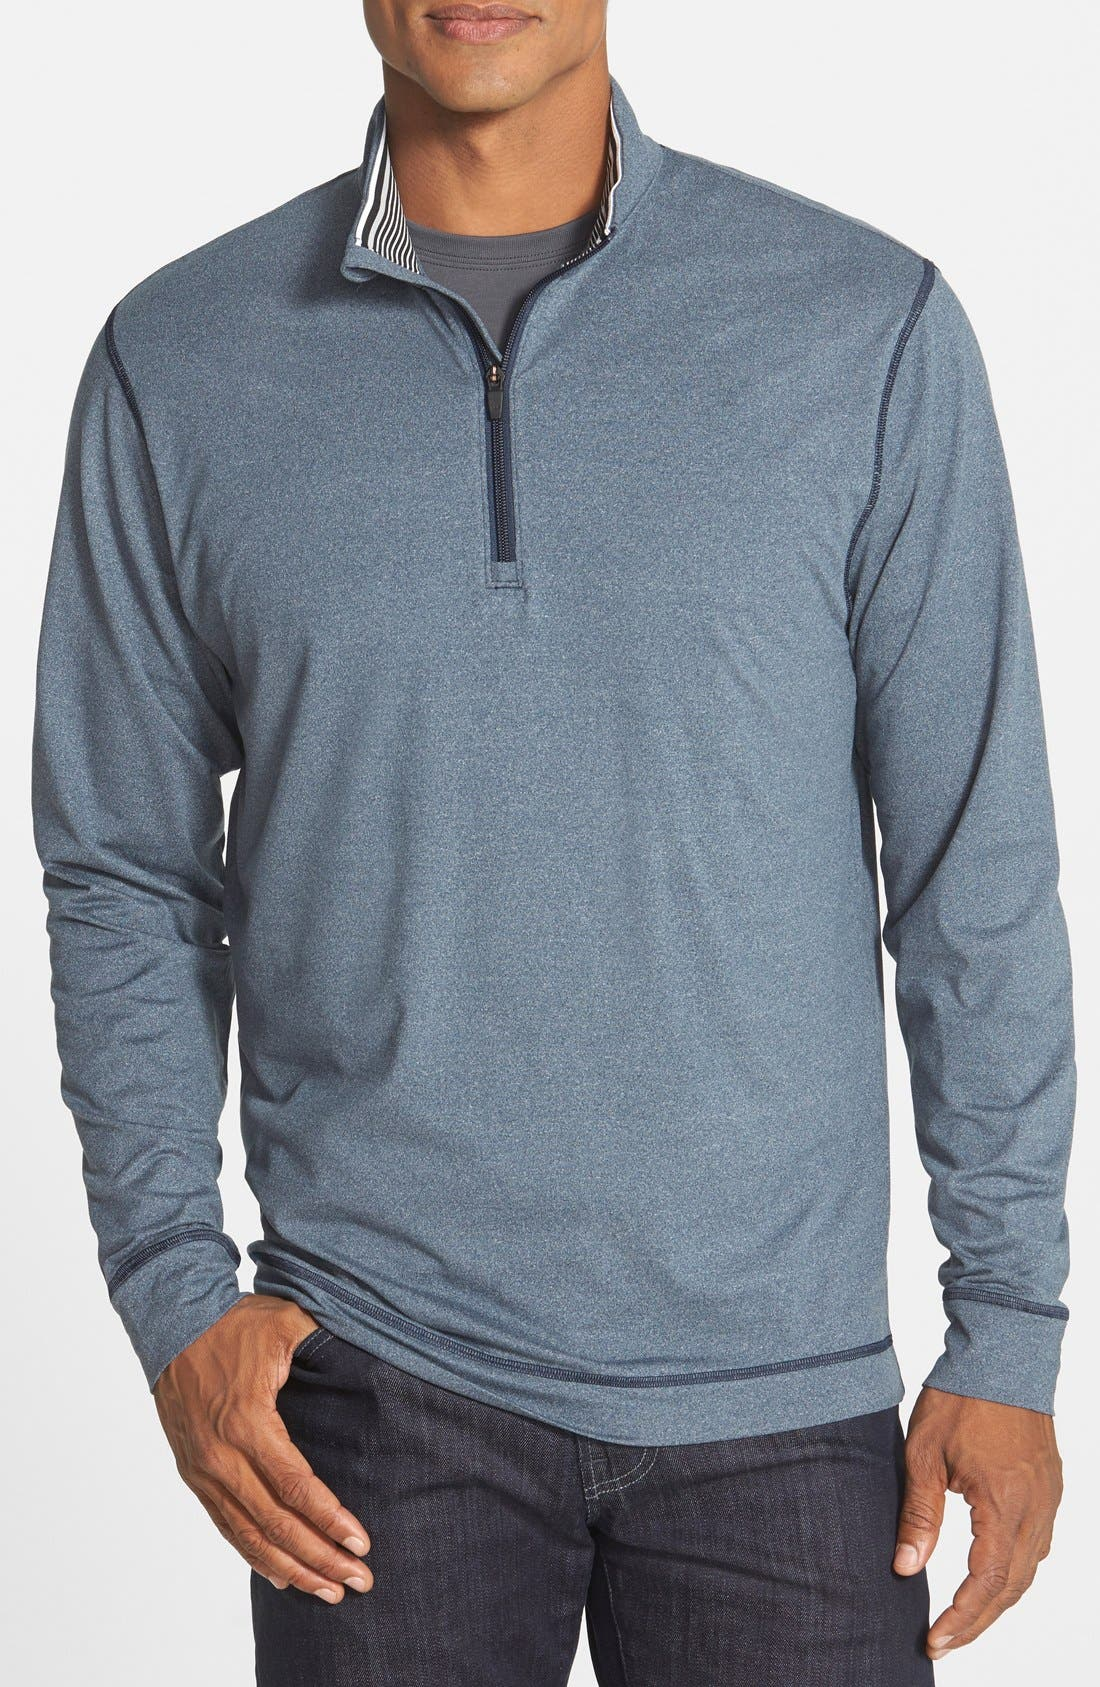 CUTTER & BUCK 'Topspin' DryTec Half Zip Pullover, Main, color, NAVY HEATHER